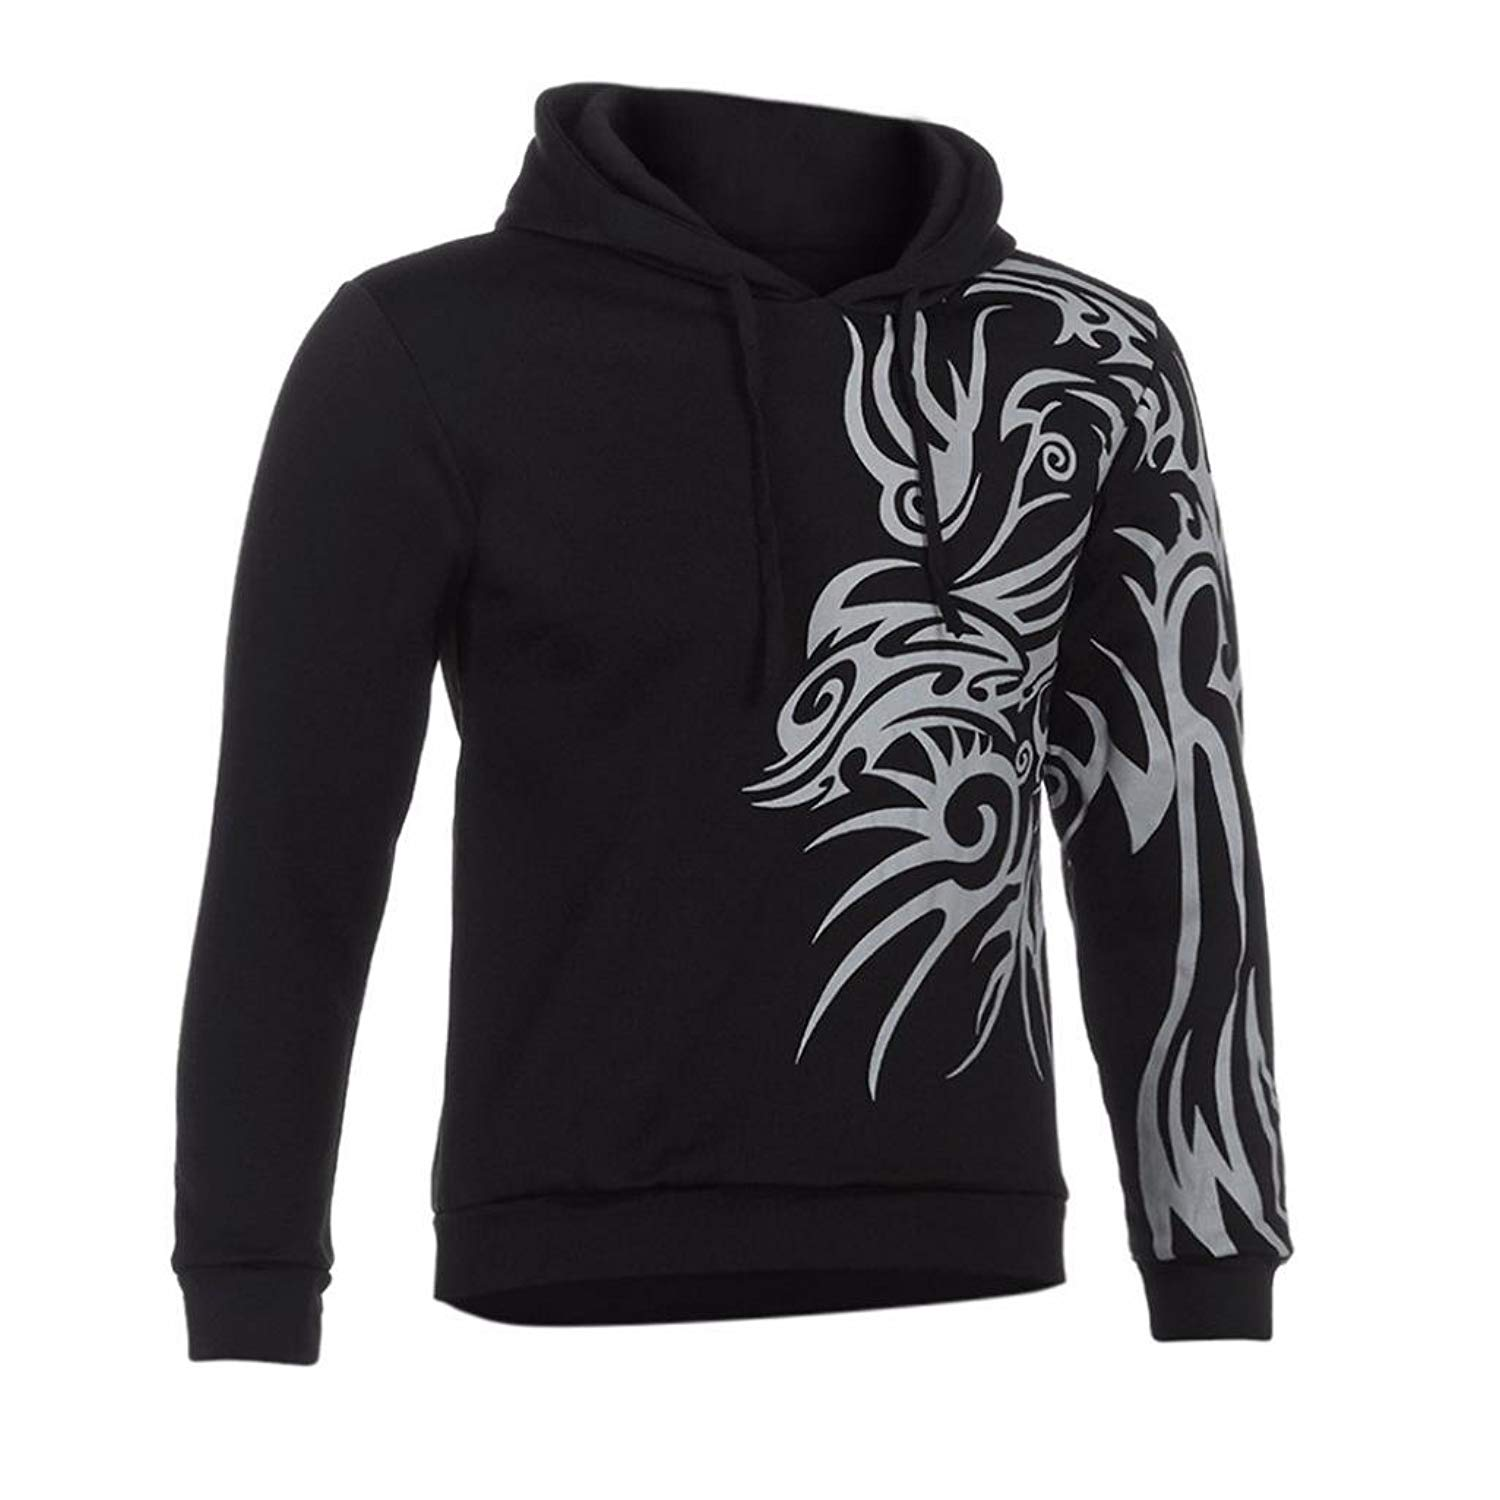 Hot Sale!Mens Hoodies,Bokeley Fashion Long Sleeve Totem Print Folk Pullover Hooded Sweatshirt Jacket Coat Outwear